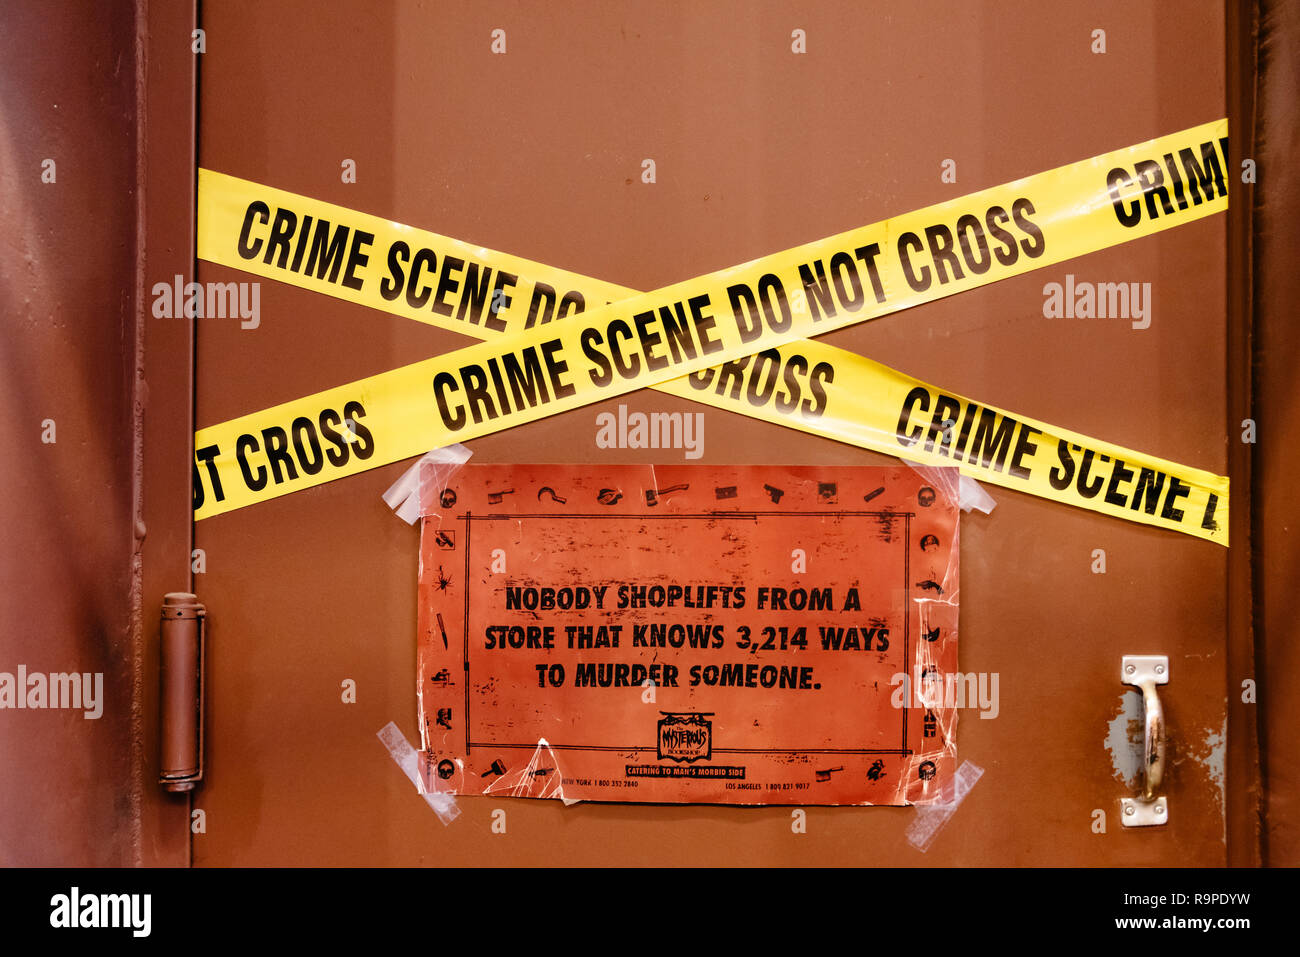 New York City, USA - 25. Juni 2018: Crime Scene Do Not Cross Tape in der Buchhandlung Warnung vor shoplifts Stockbild